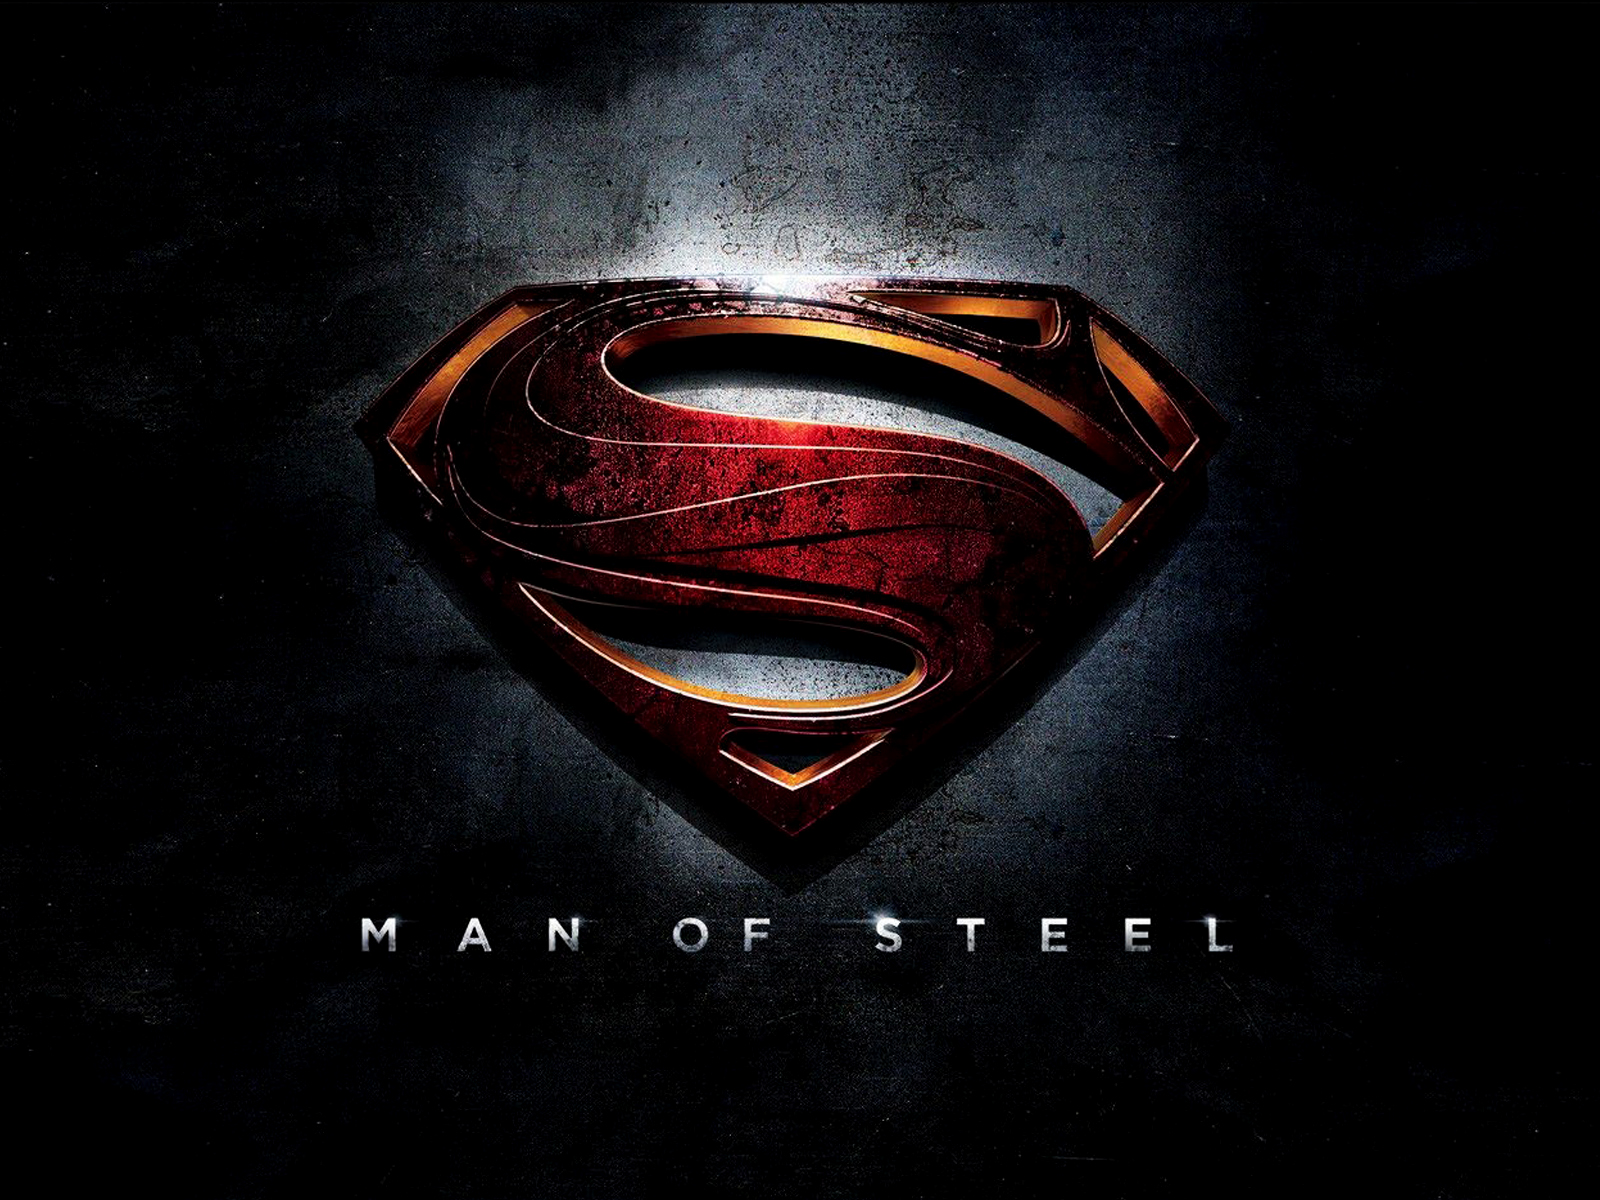 Man of Steel Superman 2013 HD Wallpapers Download Wallpapers in 1600x1200